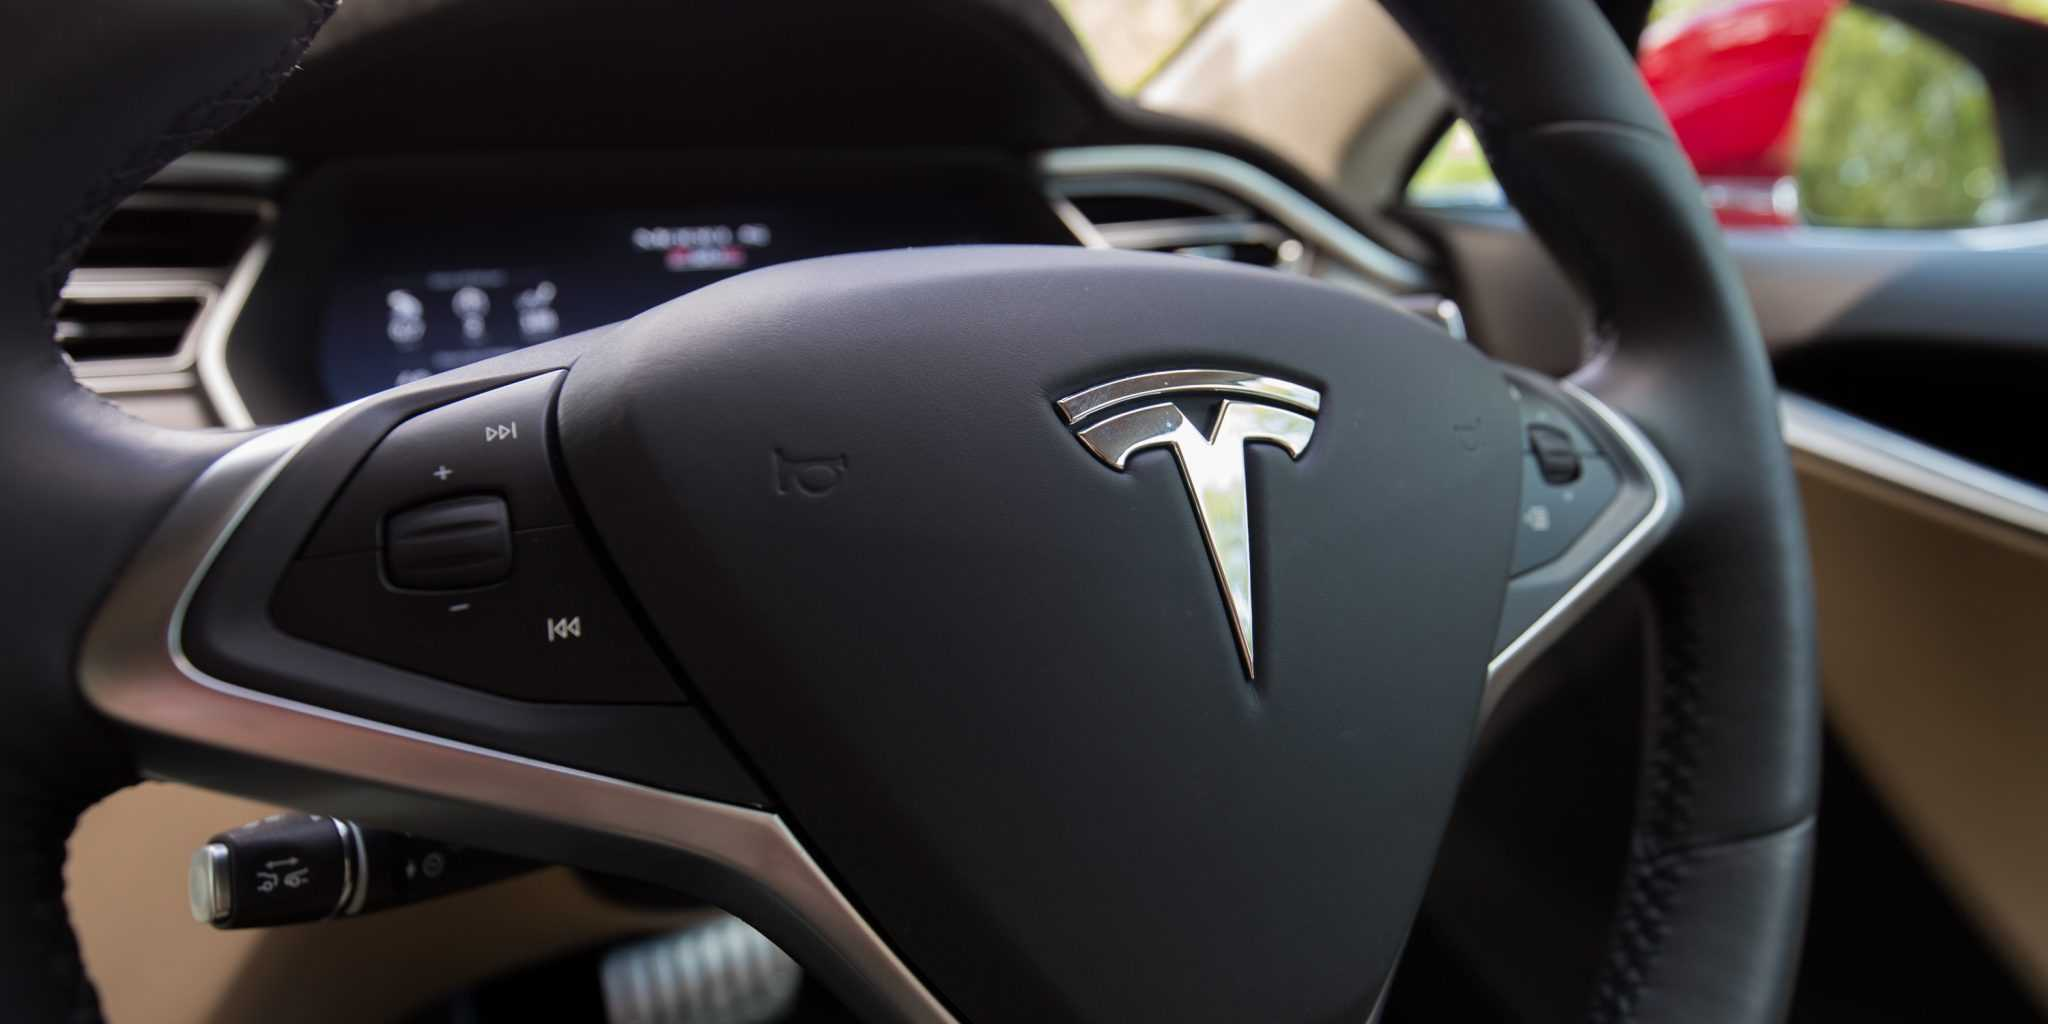 Tesla Video Reveals How Autopilot 2.0 Works and Autonomous Cars Sees the World